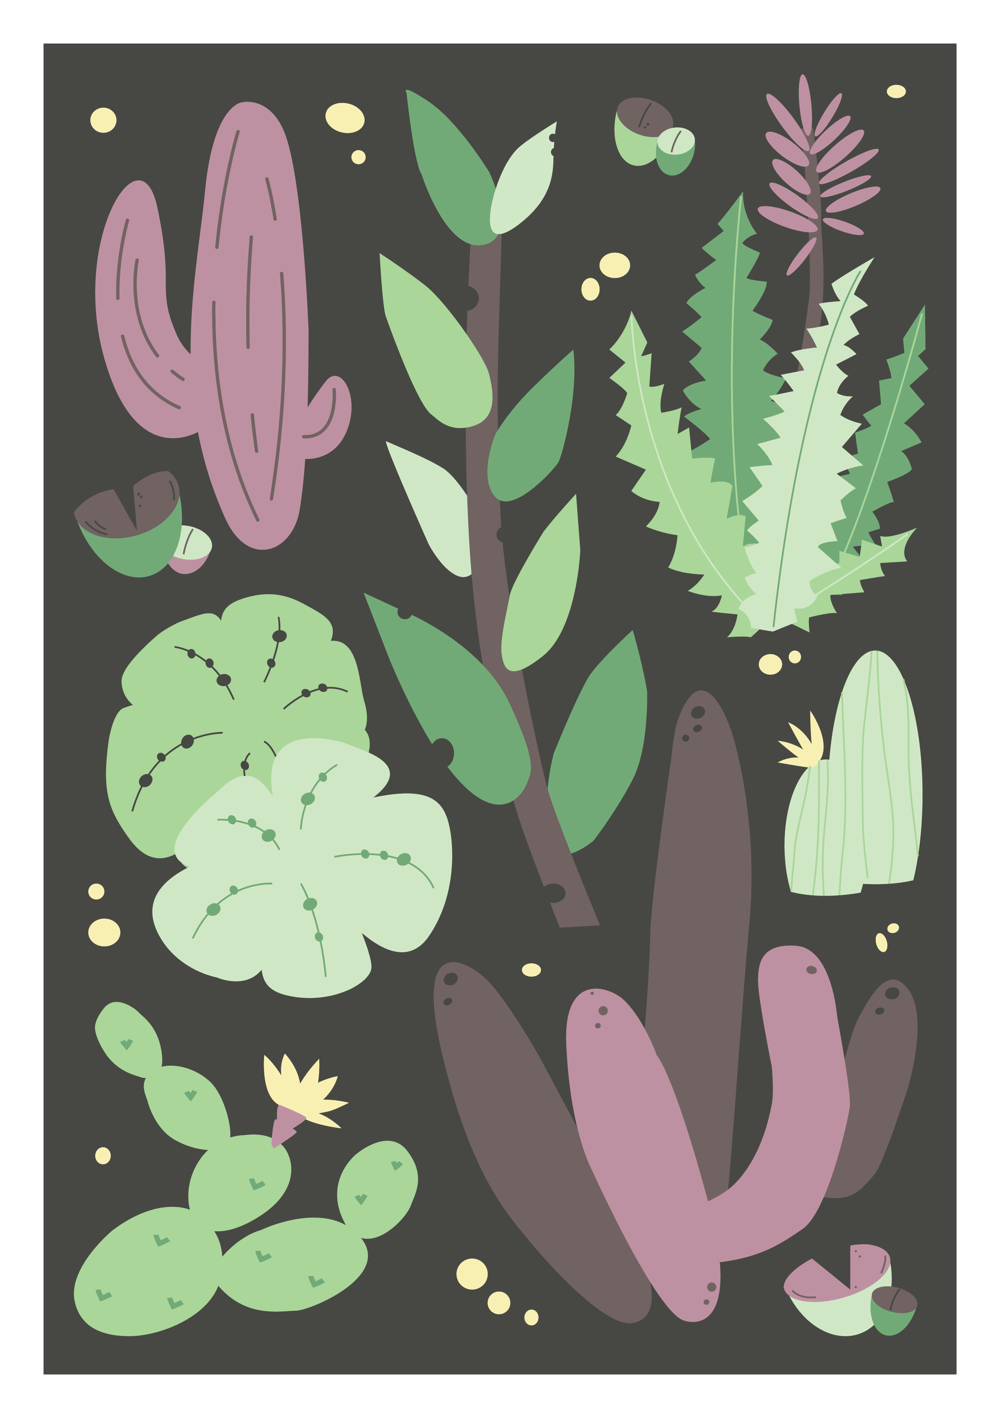 Blooming Cactus Composition - image 1 - student project